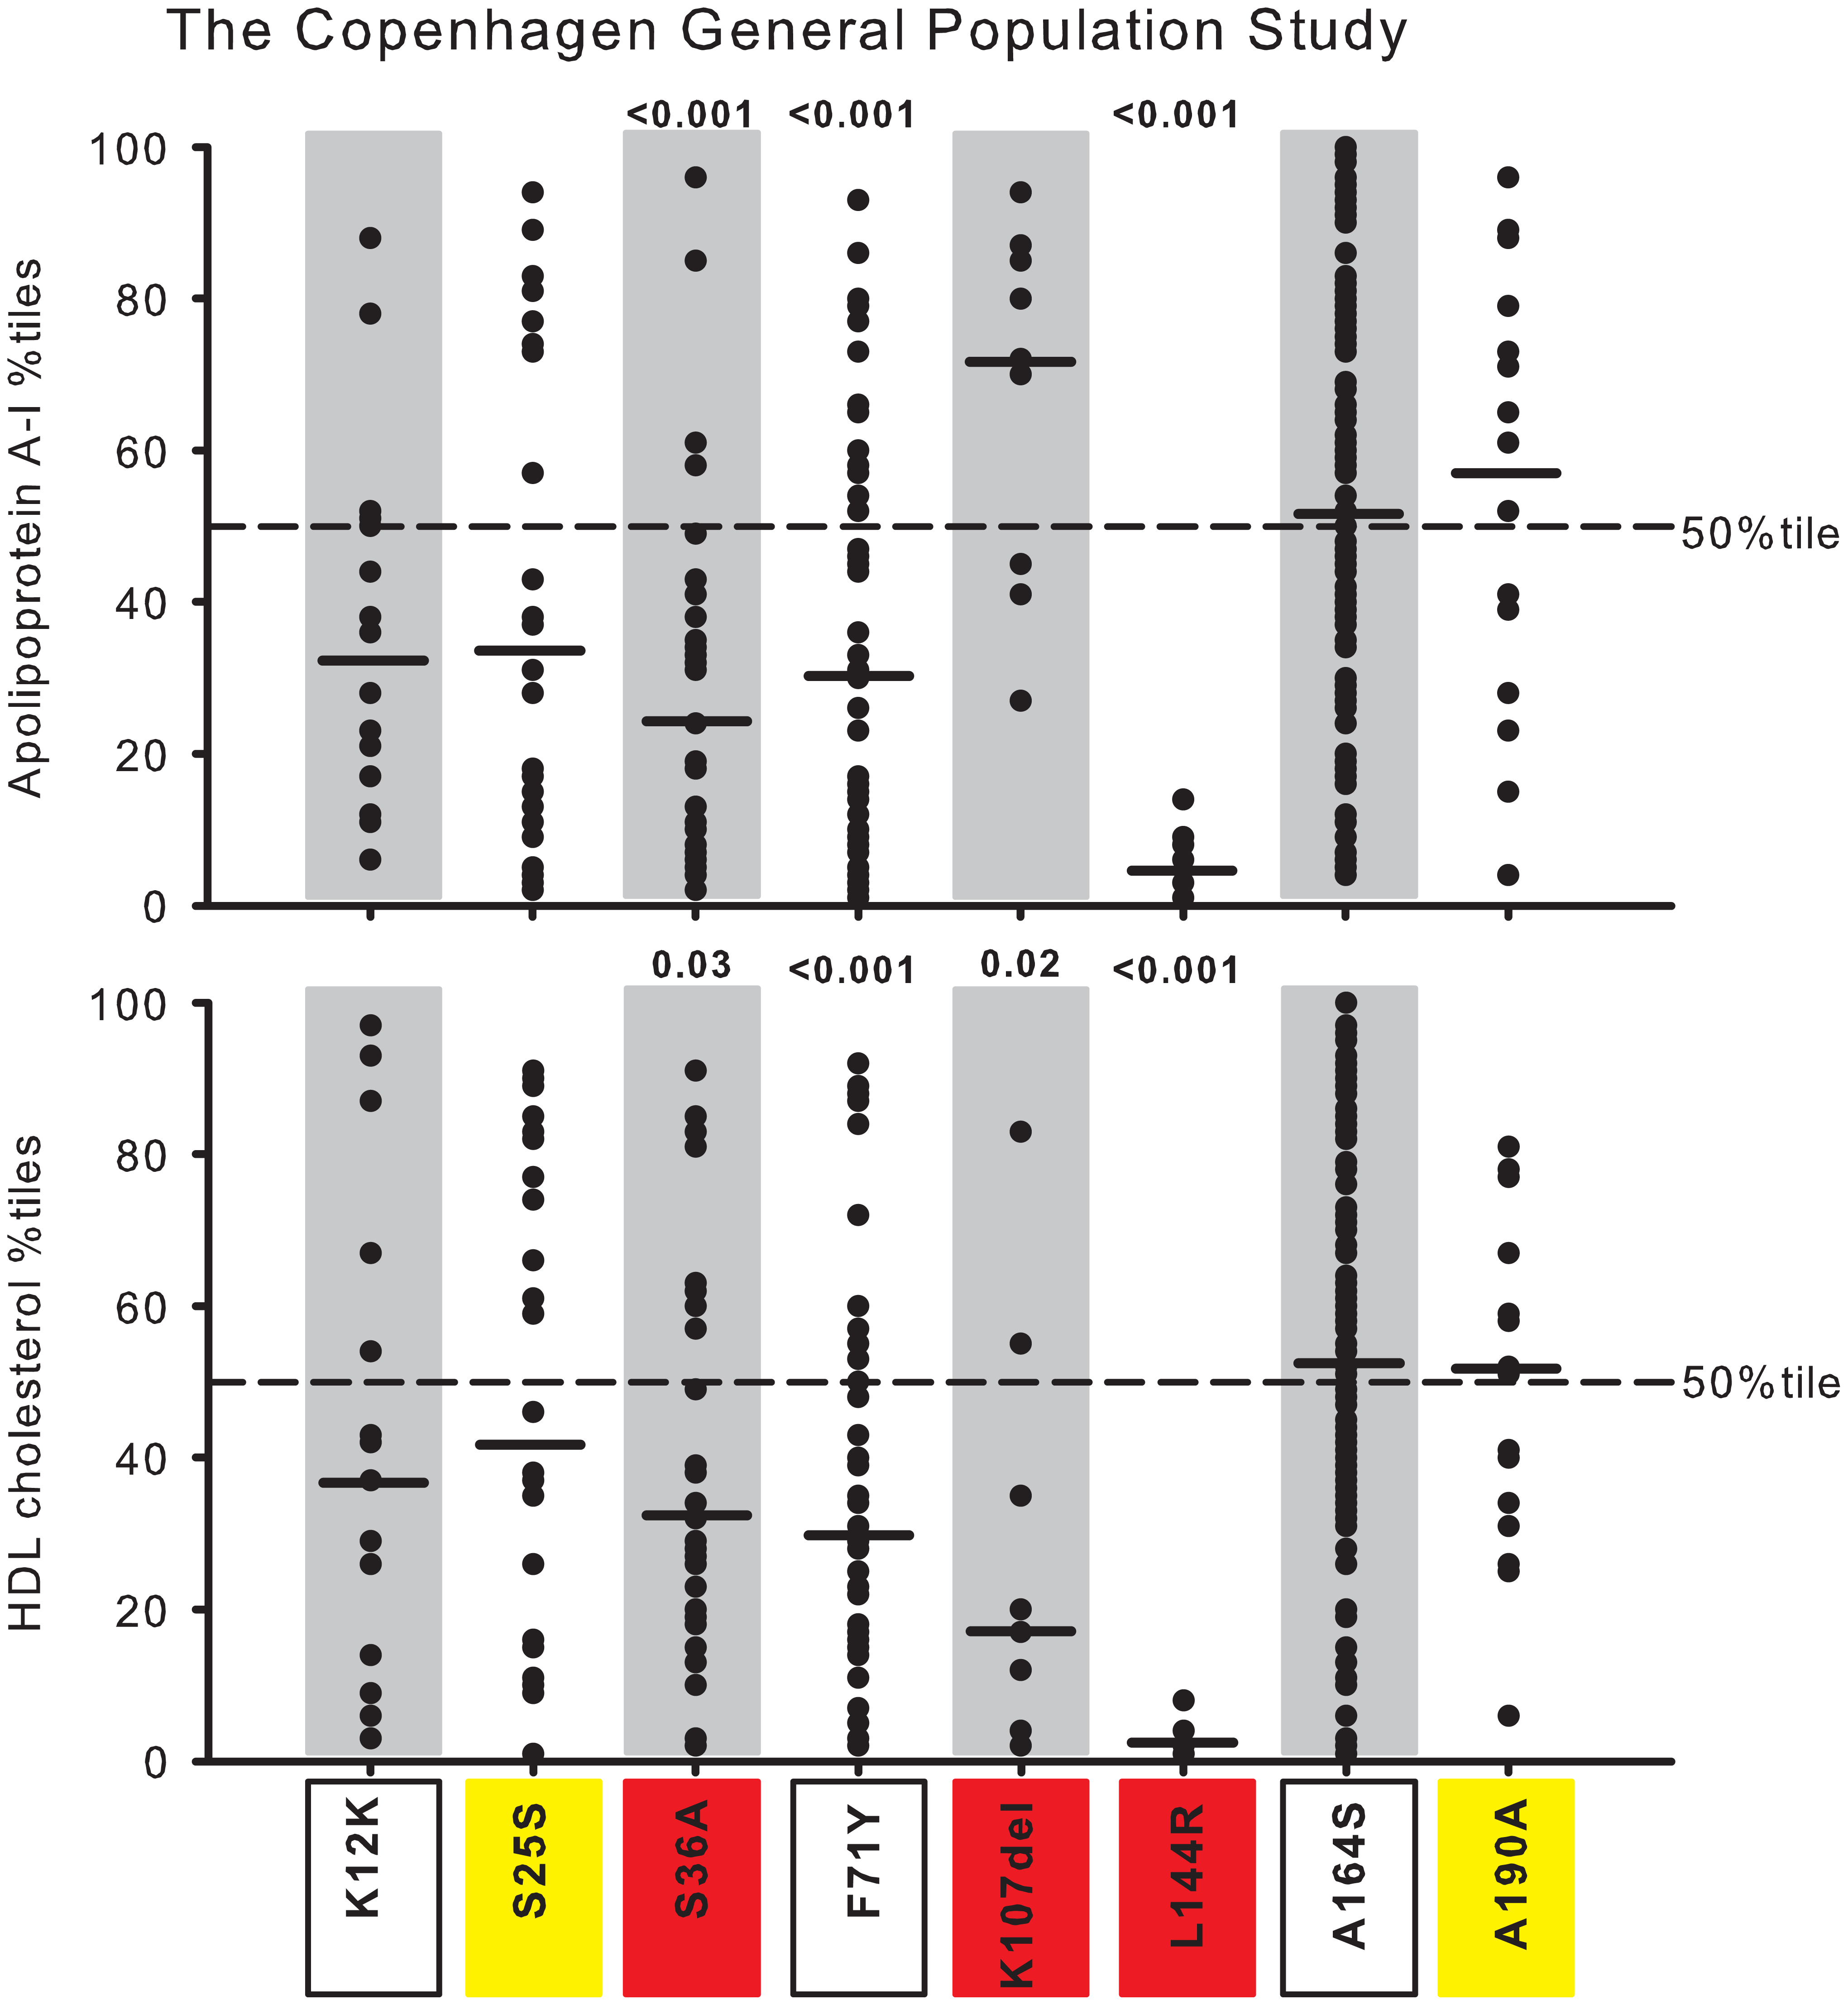 Plasma apoA-I and HDL cholesterol in percentiles for nonsynonymous and synonymous variants in <i>APOA1</i>.